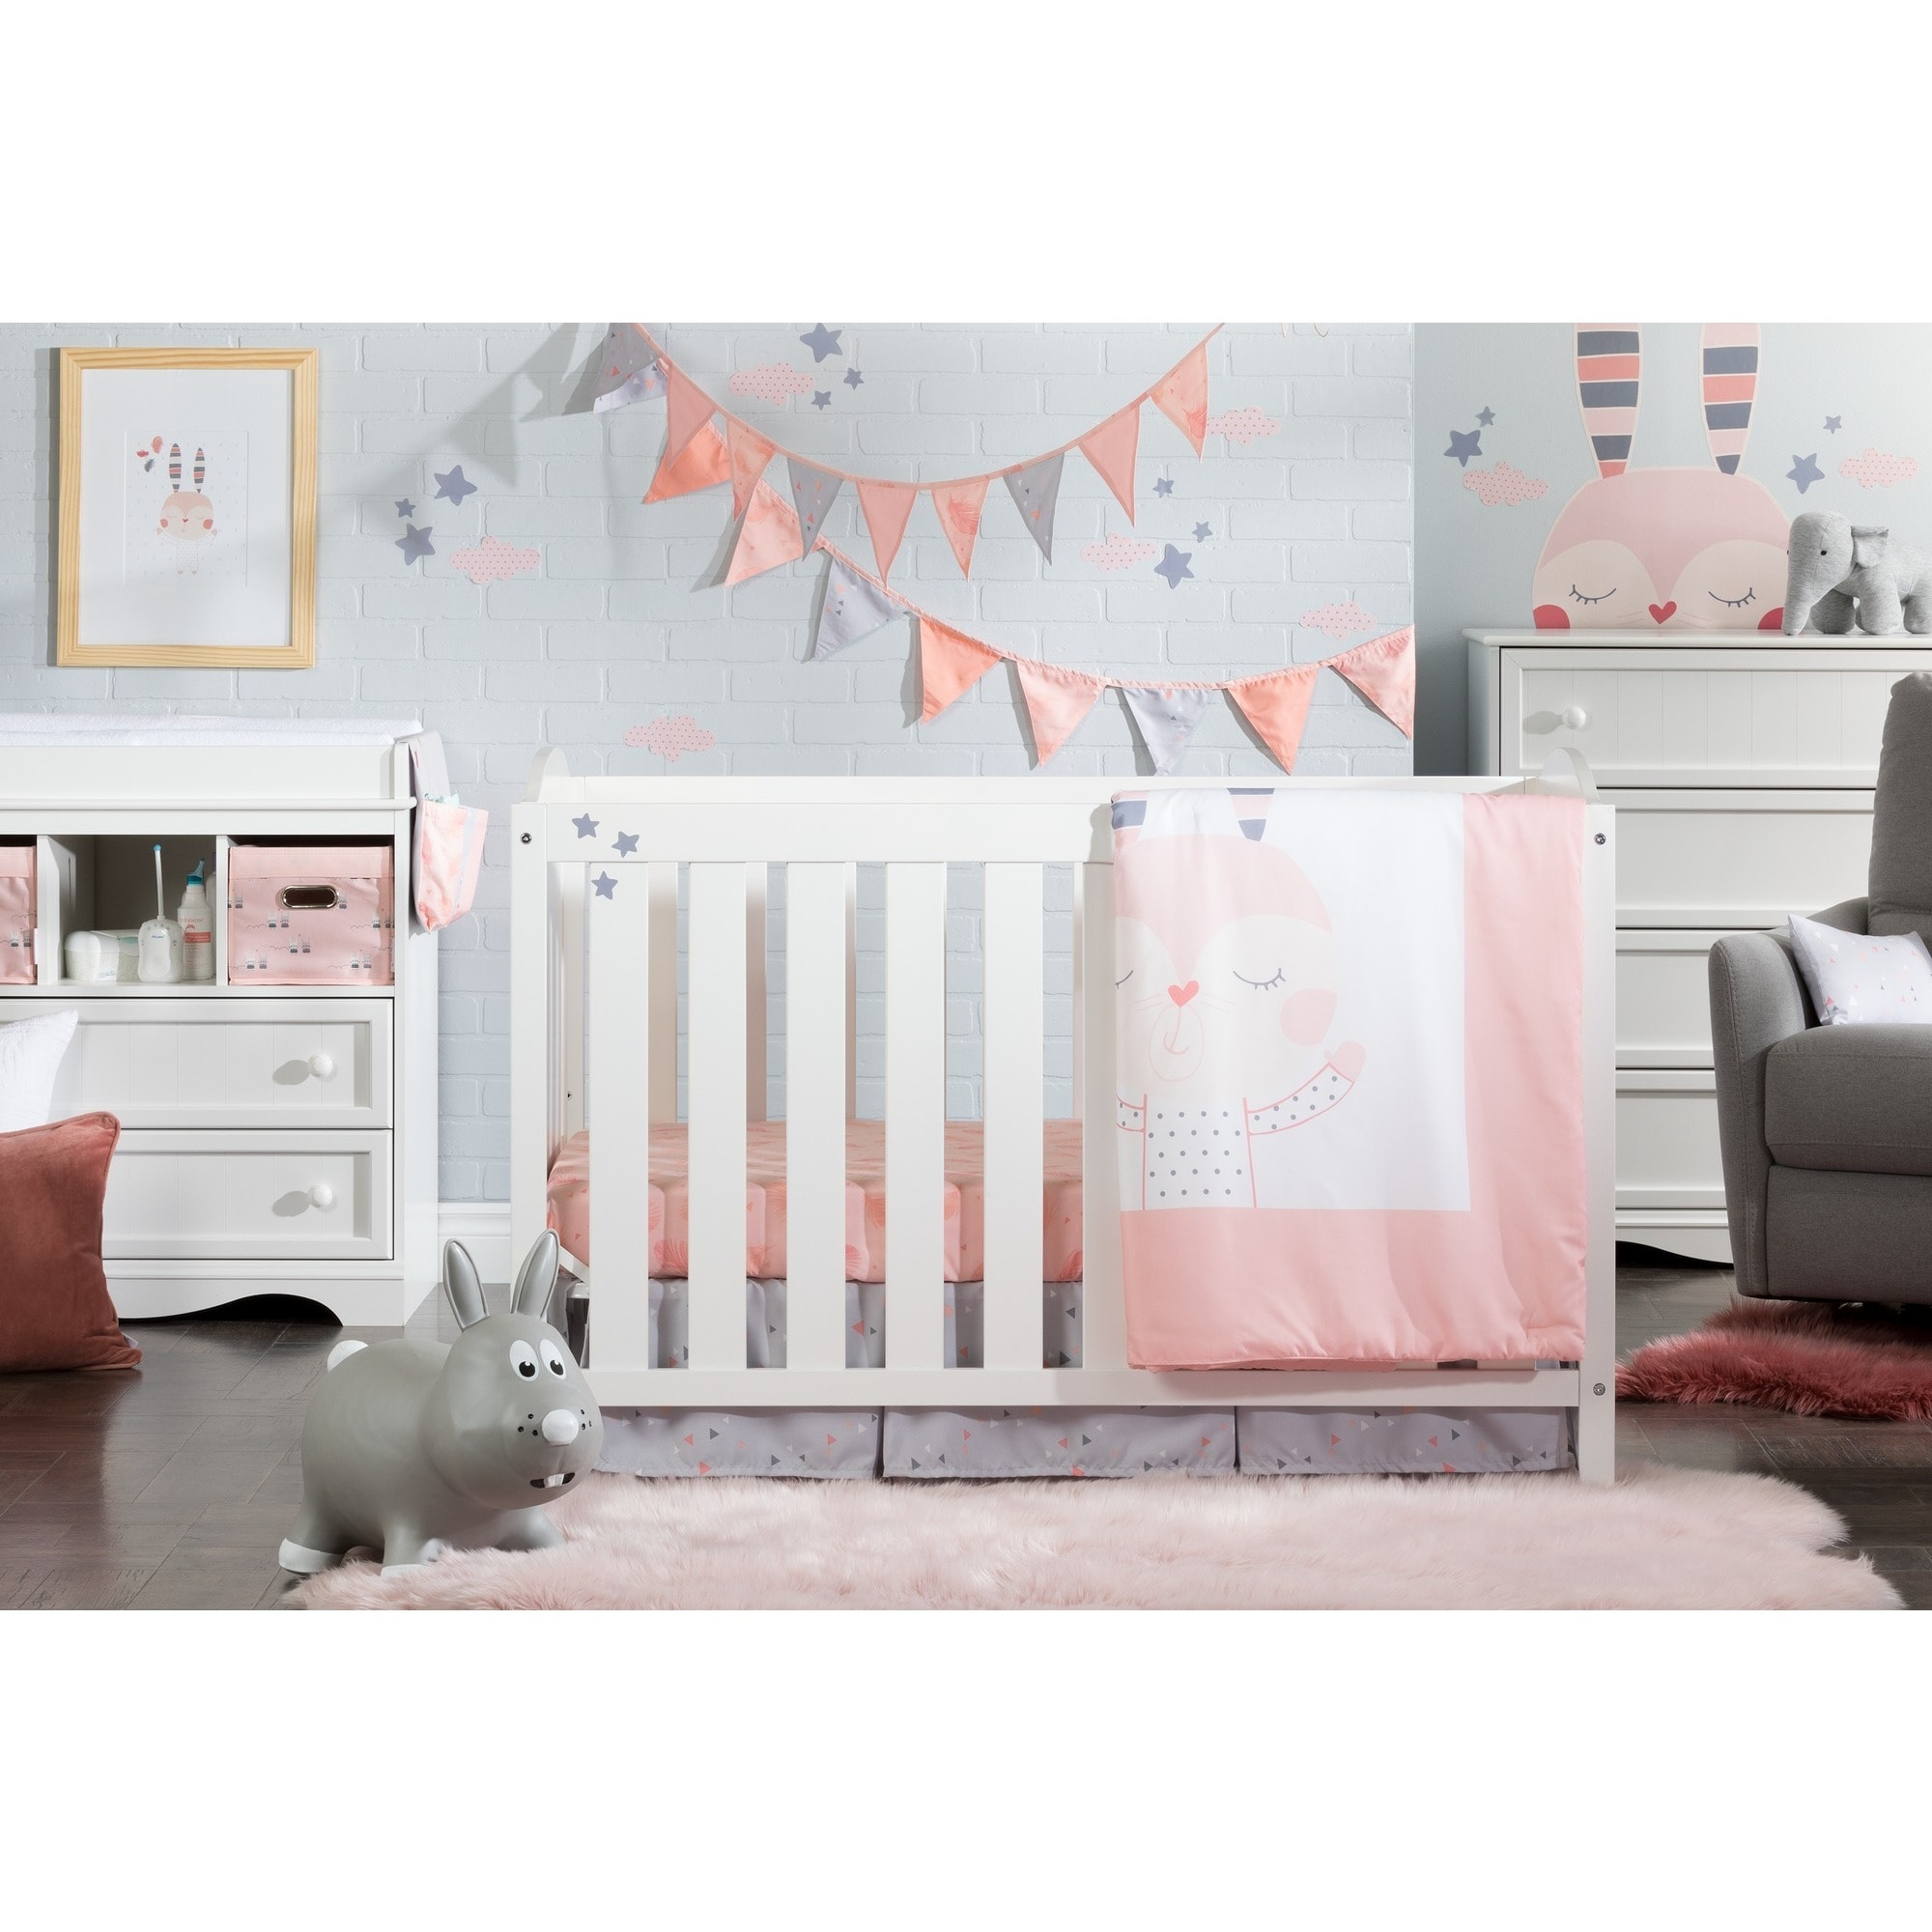 South Shore Furniture 100104 DreamIt Blue Little Whale 3-Piece Baby Crib Bed Set and Pillow